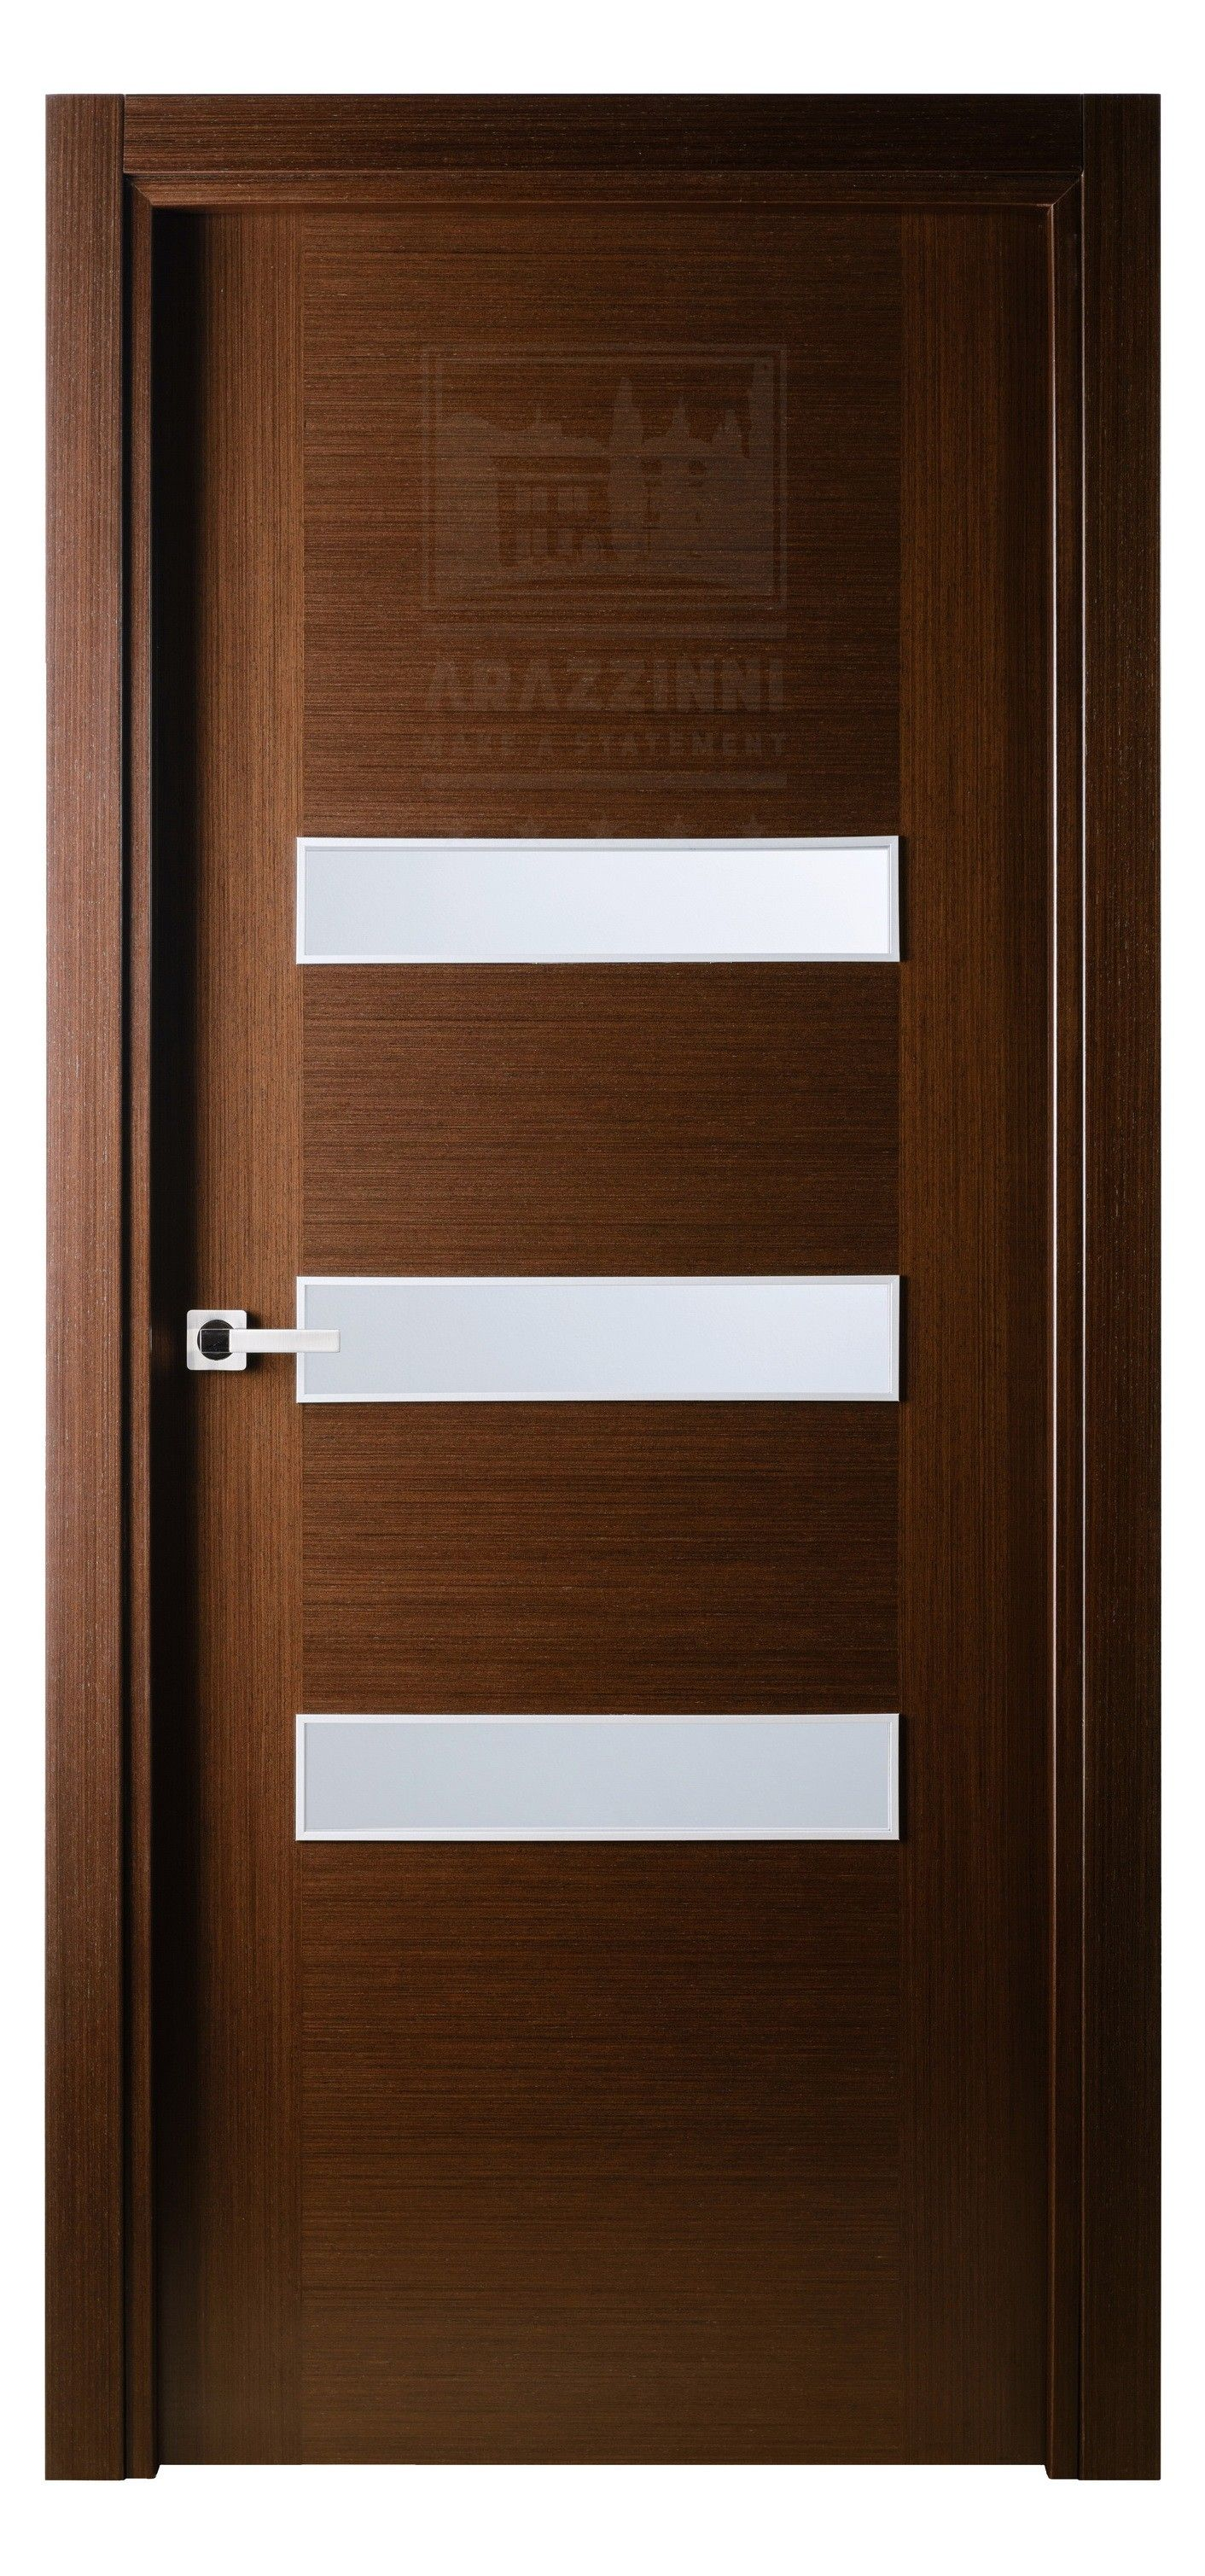 Antha Gele Interior Door in Italian Wenge Finish & Antha Gele Interior Door in Italian Wenge Finish | Exotic Wood ...